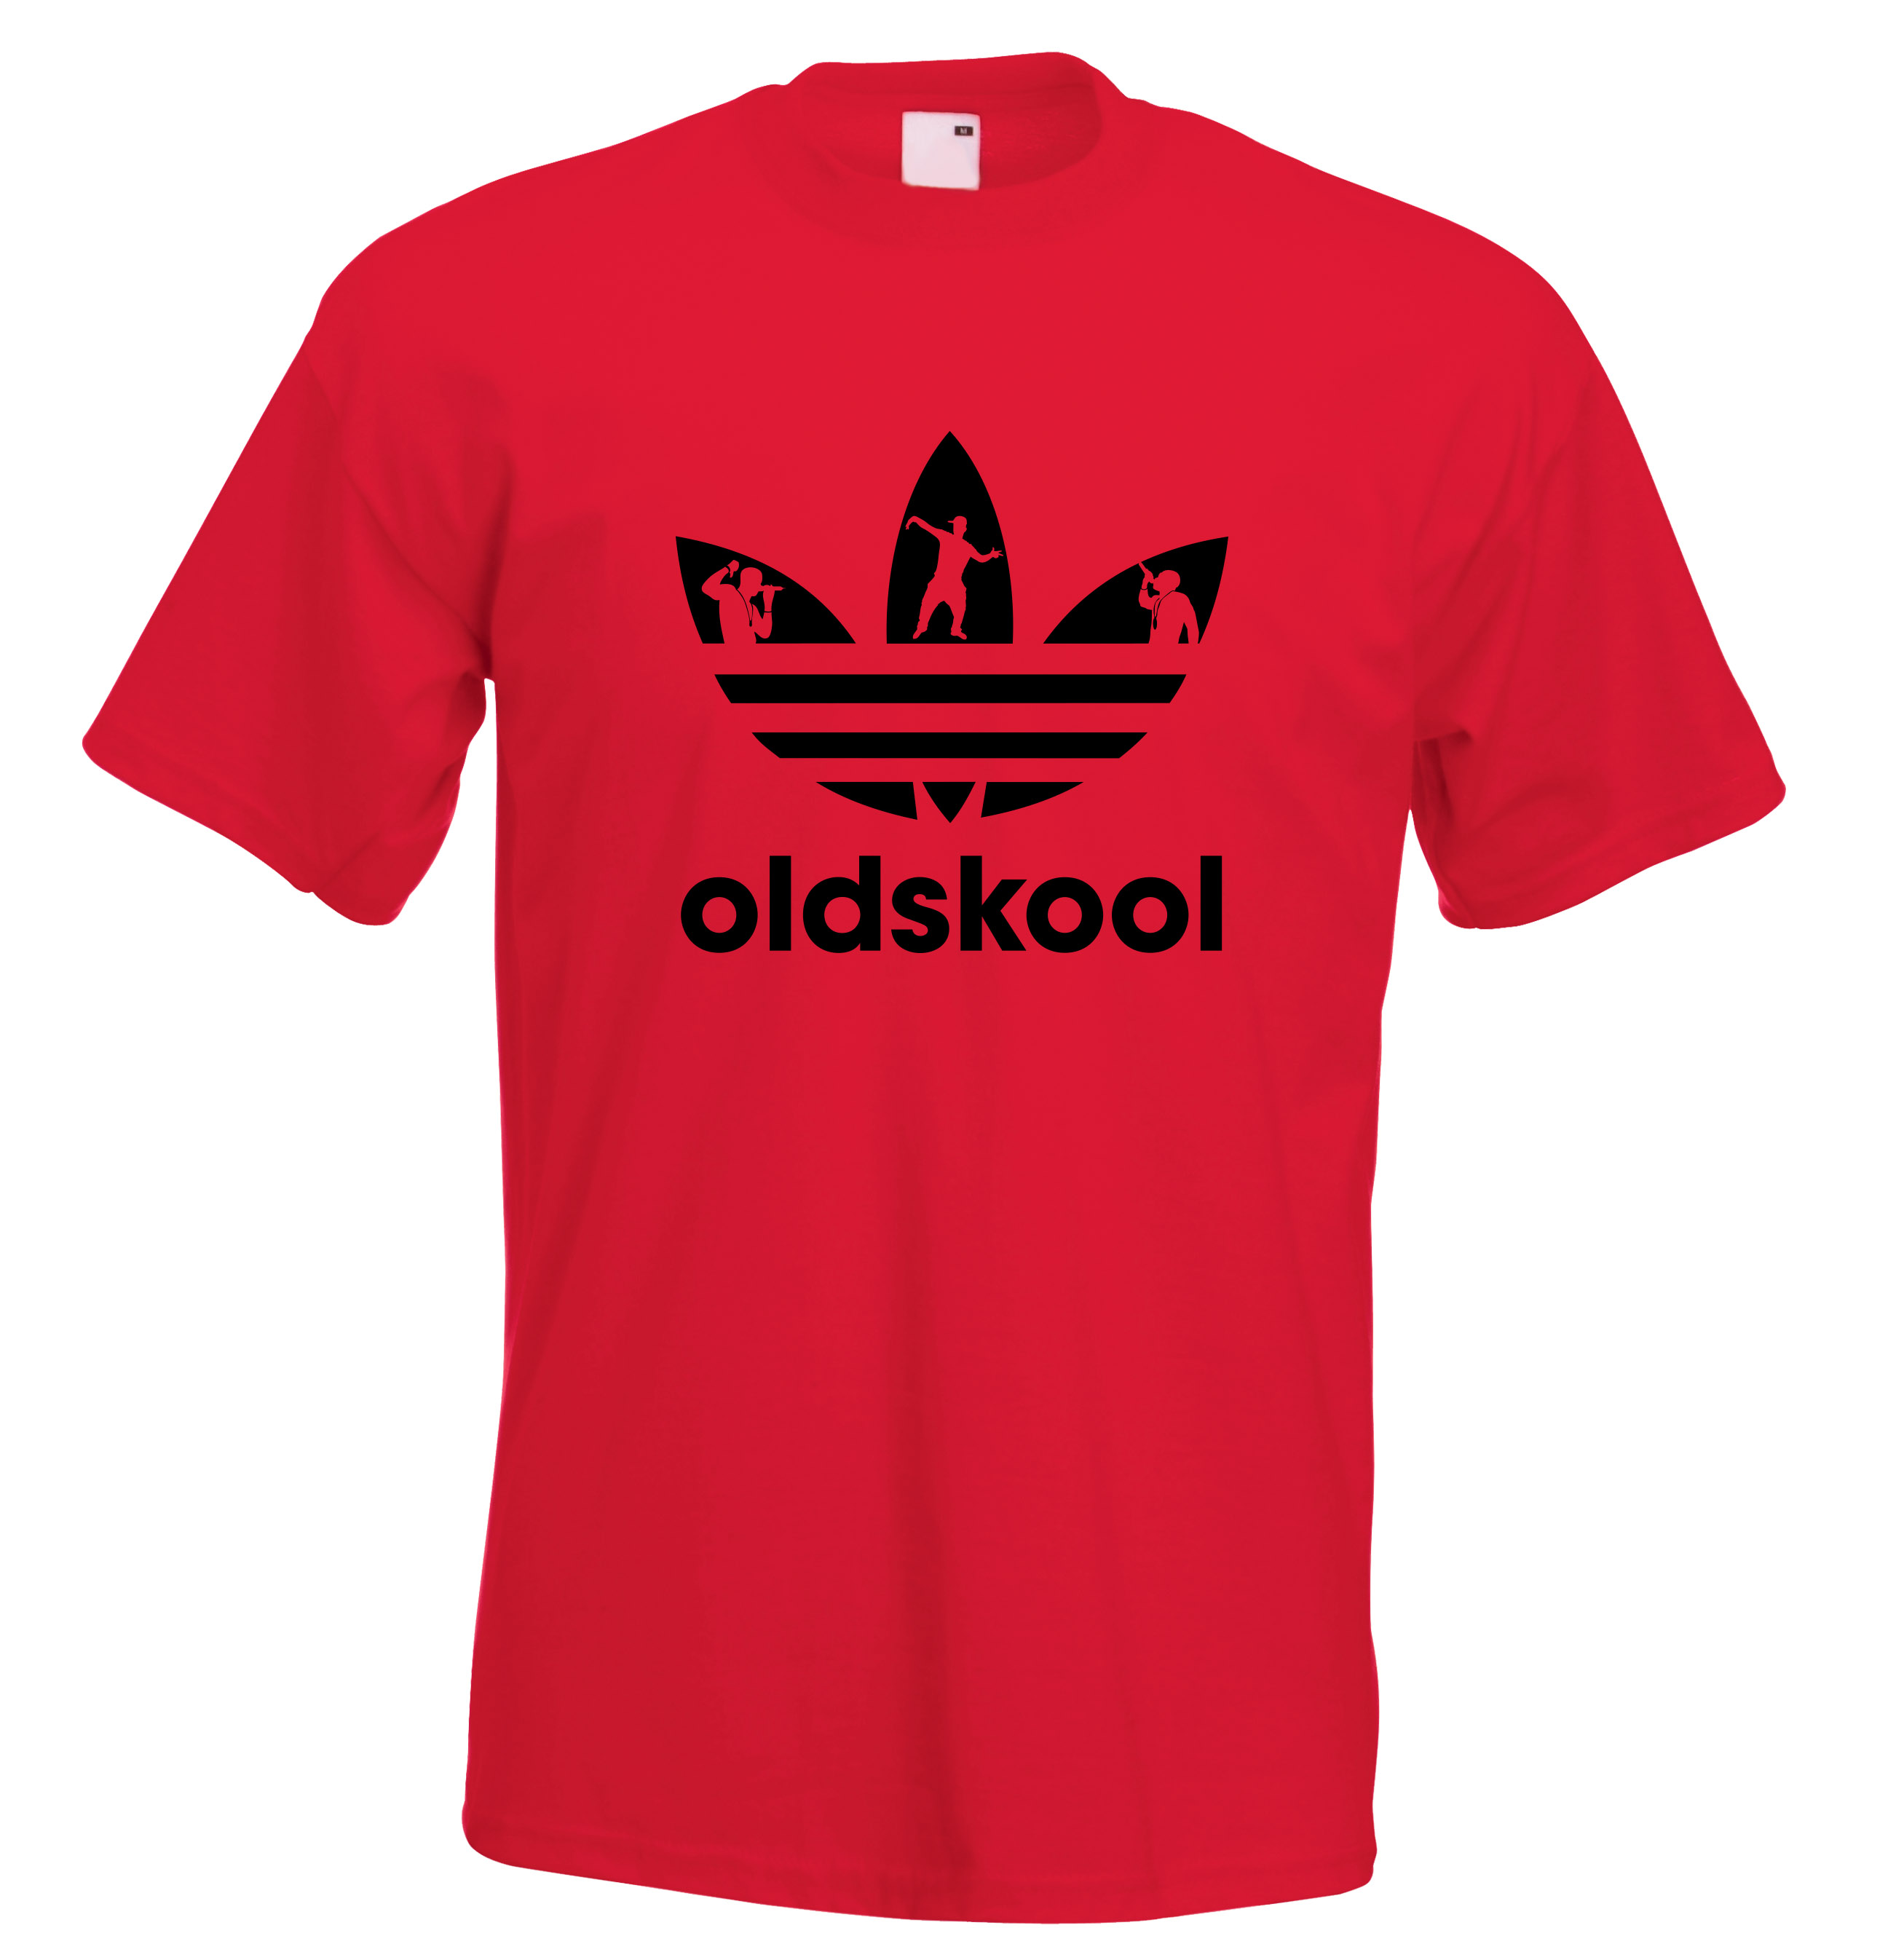 Juko kids old skool t shirt 1337 acid house retro rave t for Old skool acid house